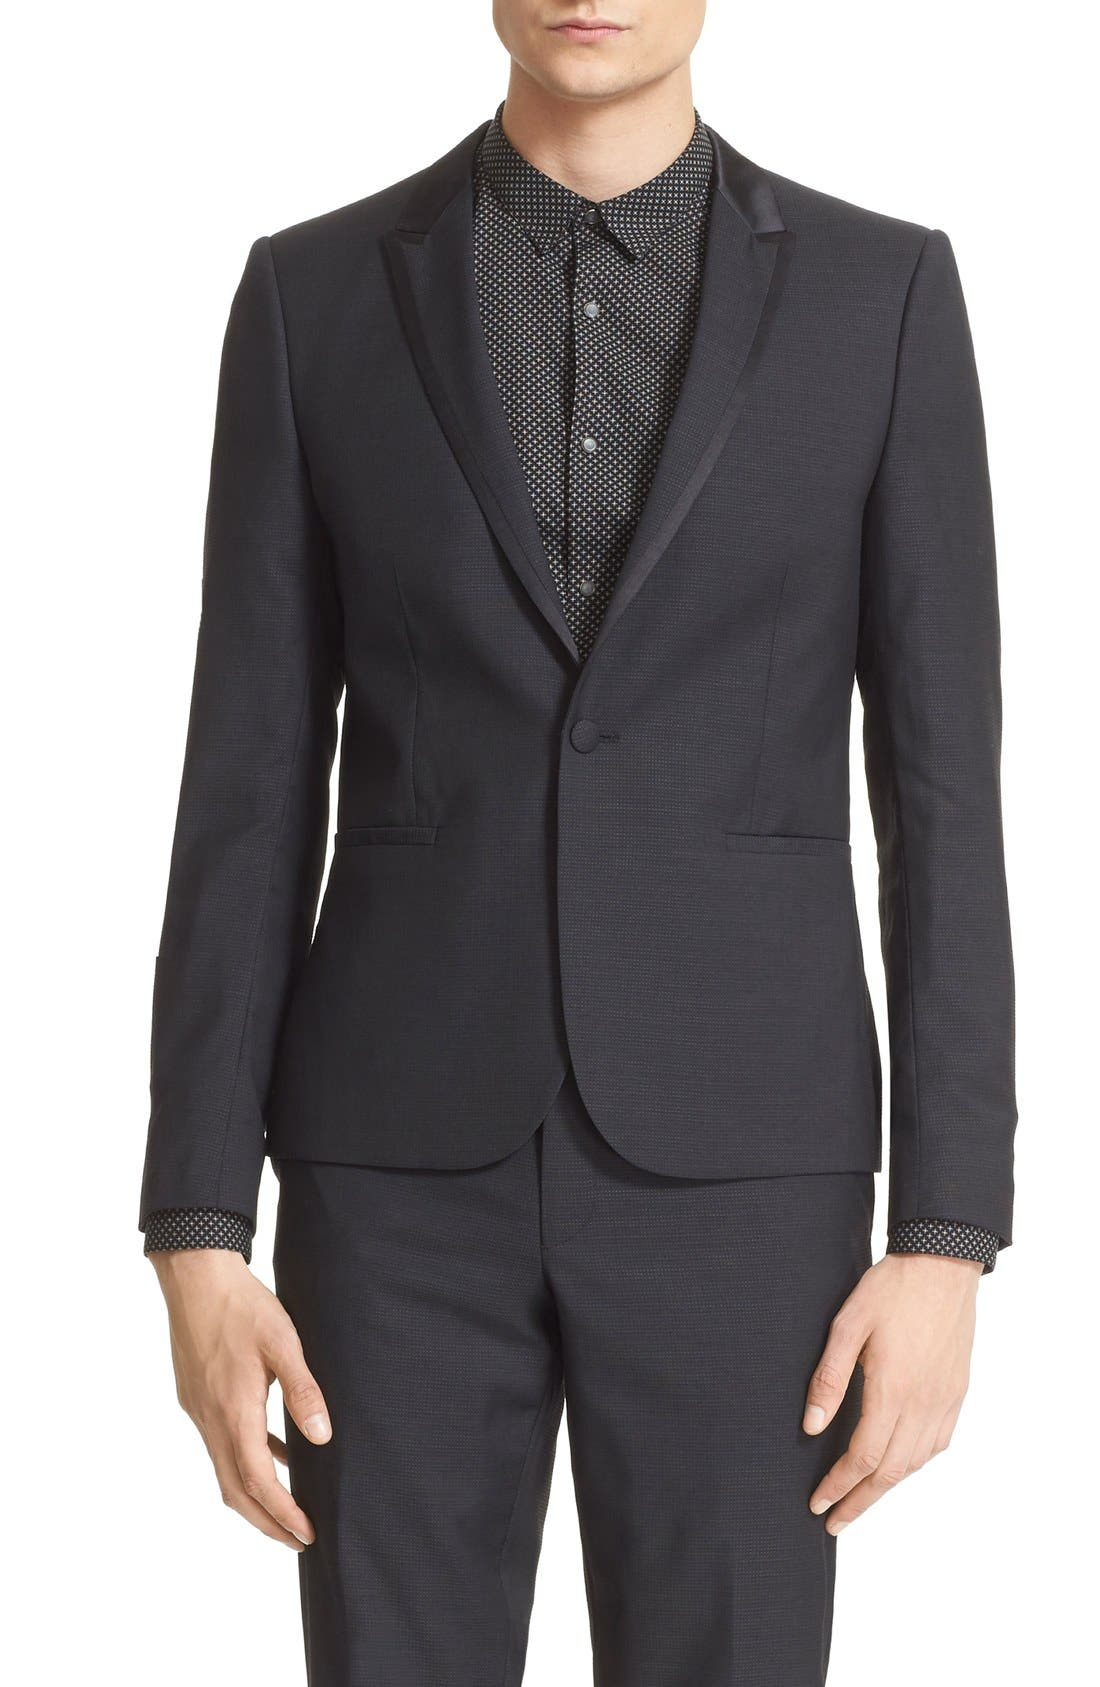 Alternate Image 1 Selected - The Kooples 'Netting' Trim Fit Suit Jacket